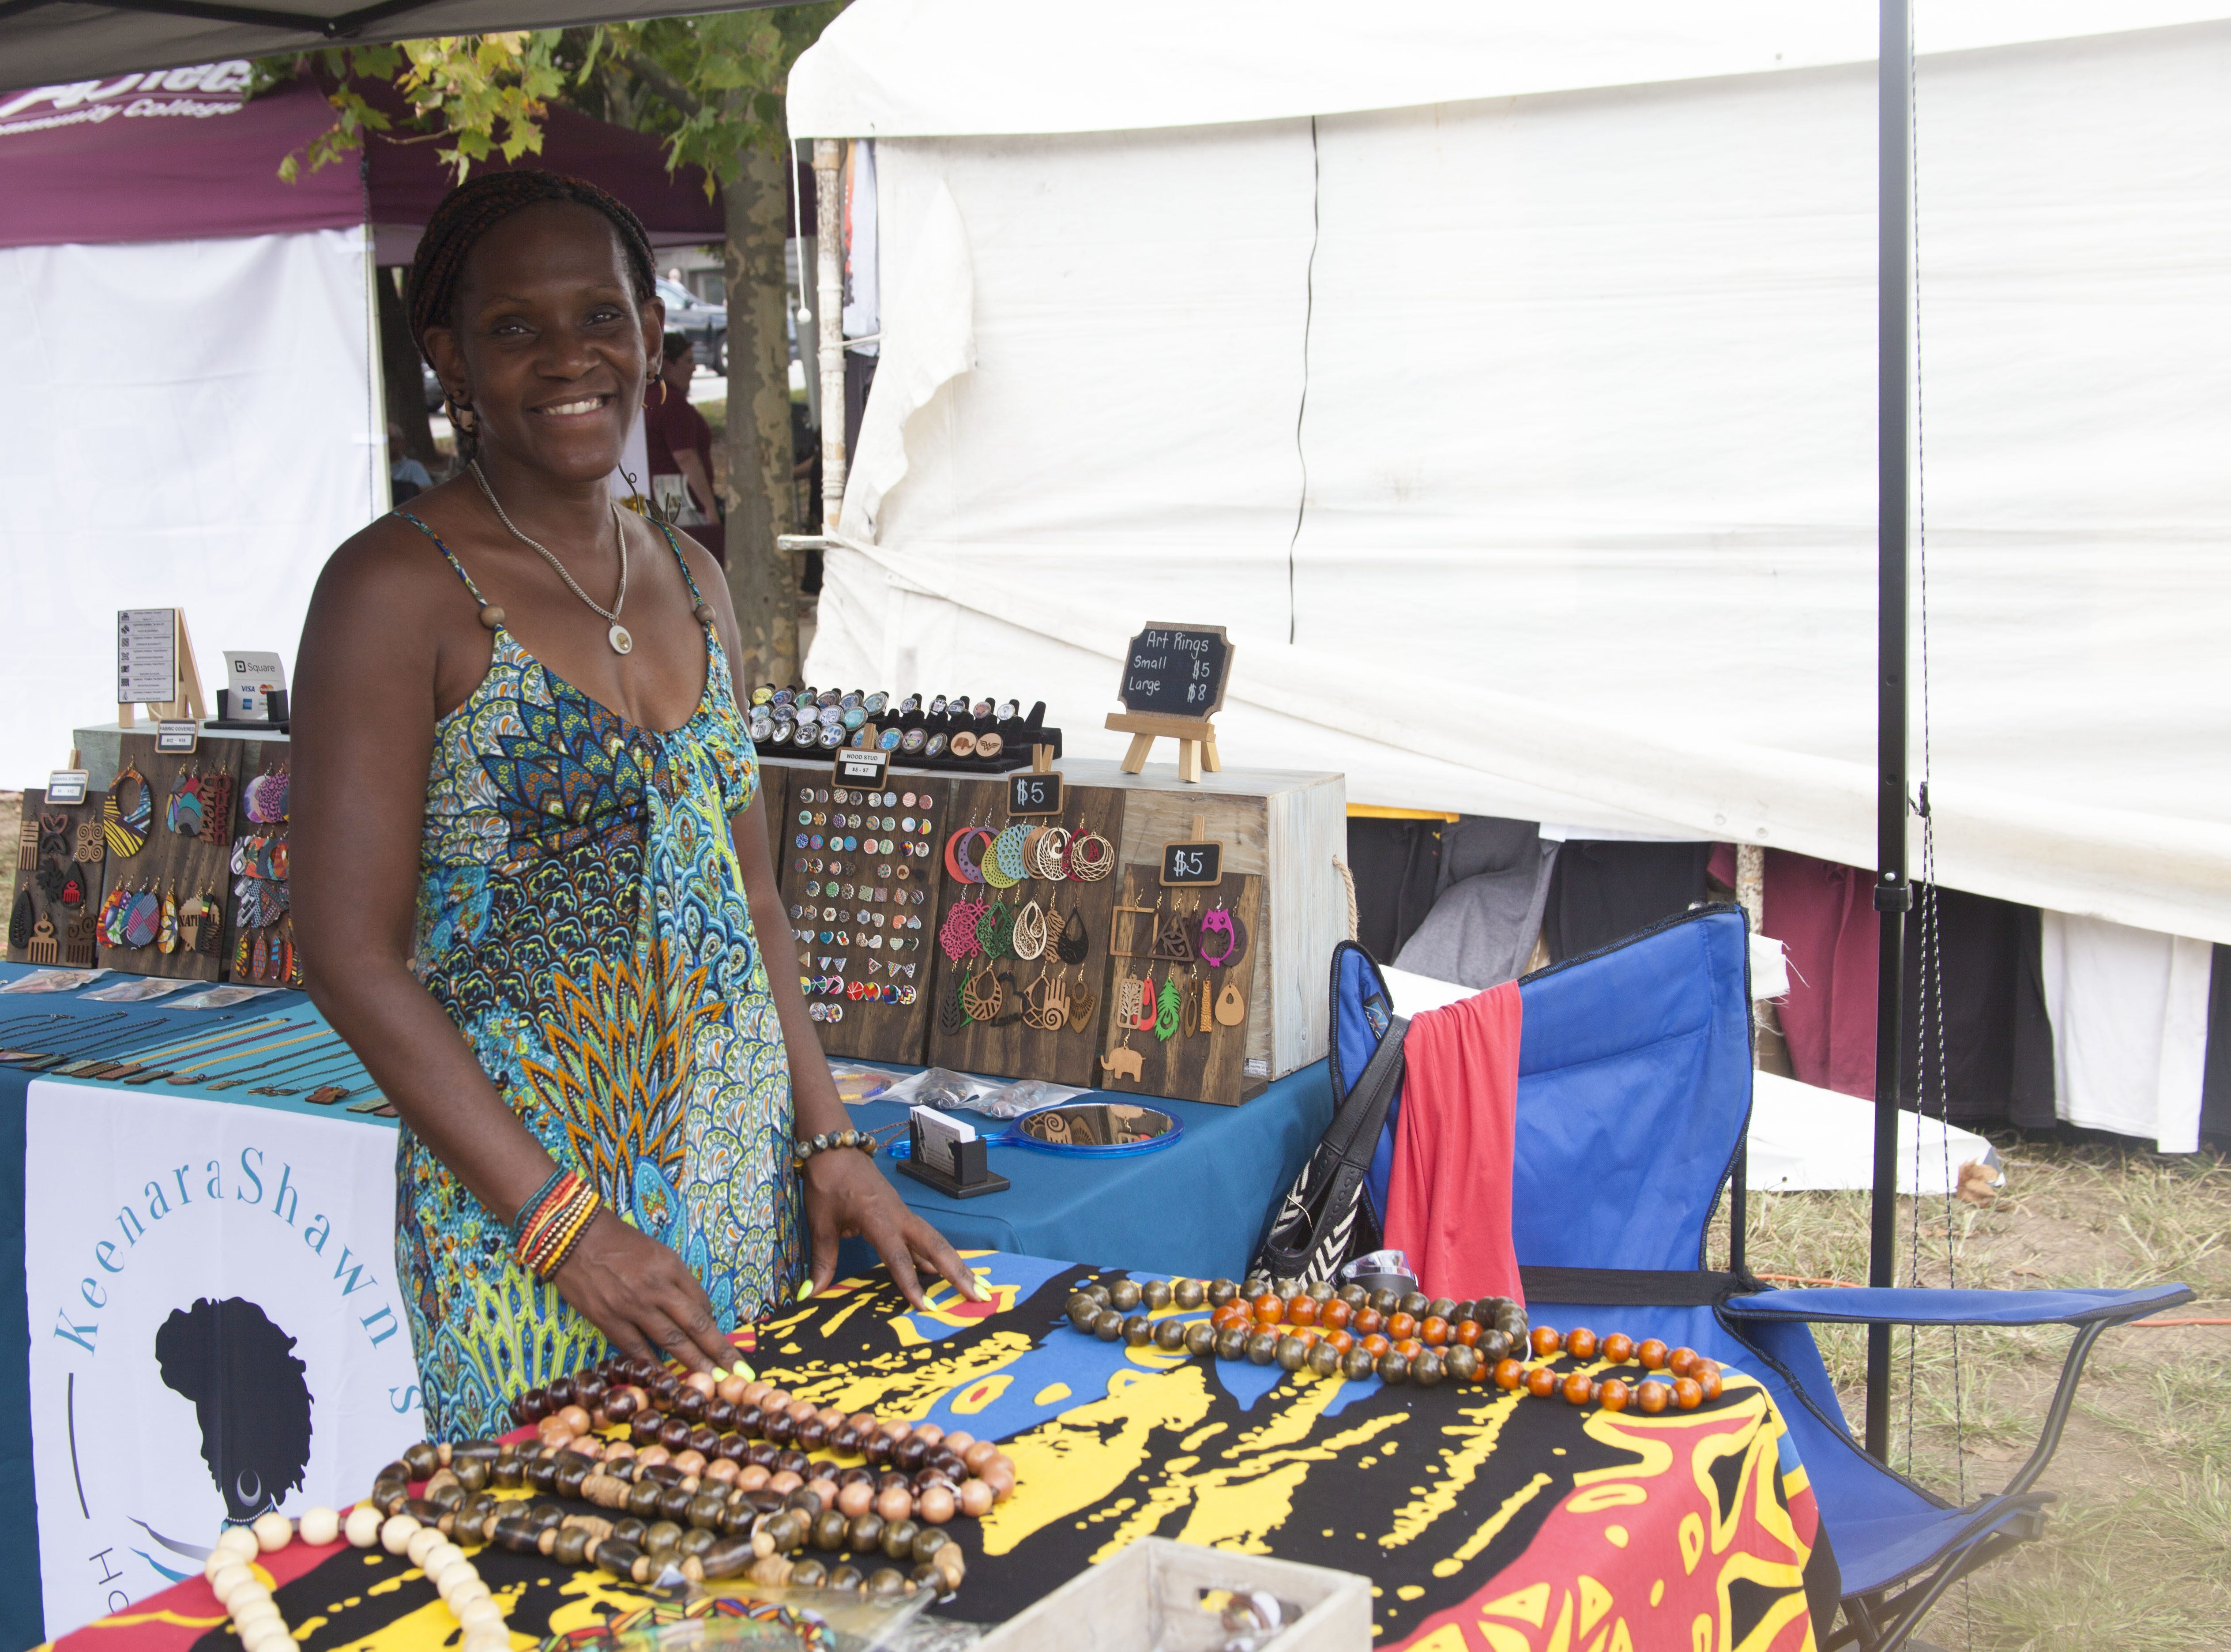 Kim Moore arranges Keenara Shawn's handmade jewelry at the 2018 Goombay Festival at the Roger McGuire Green in Pack Square Park on on Sept. 8, 2018.